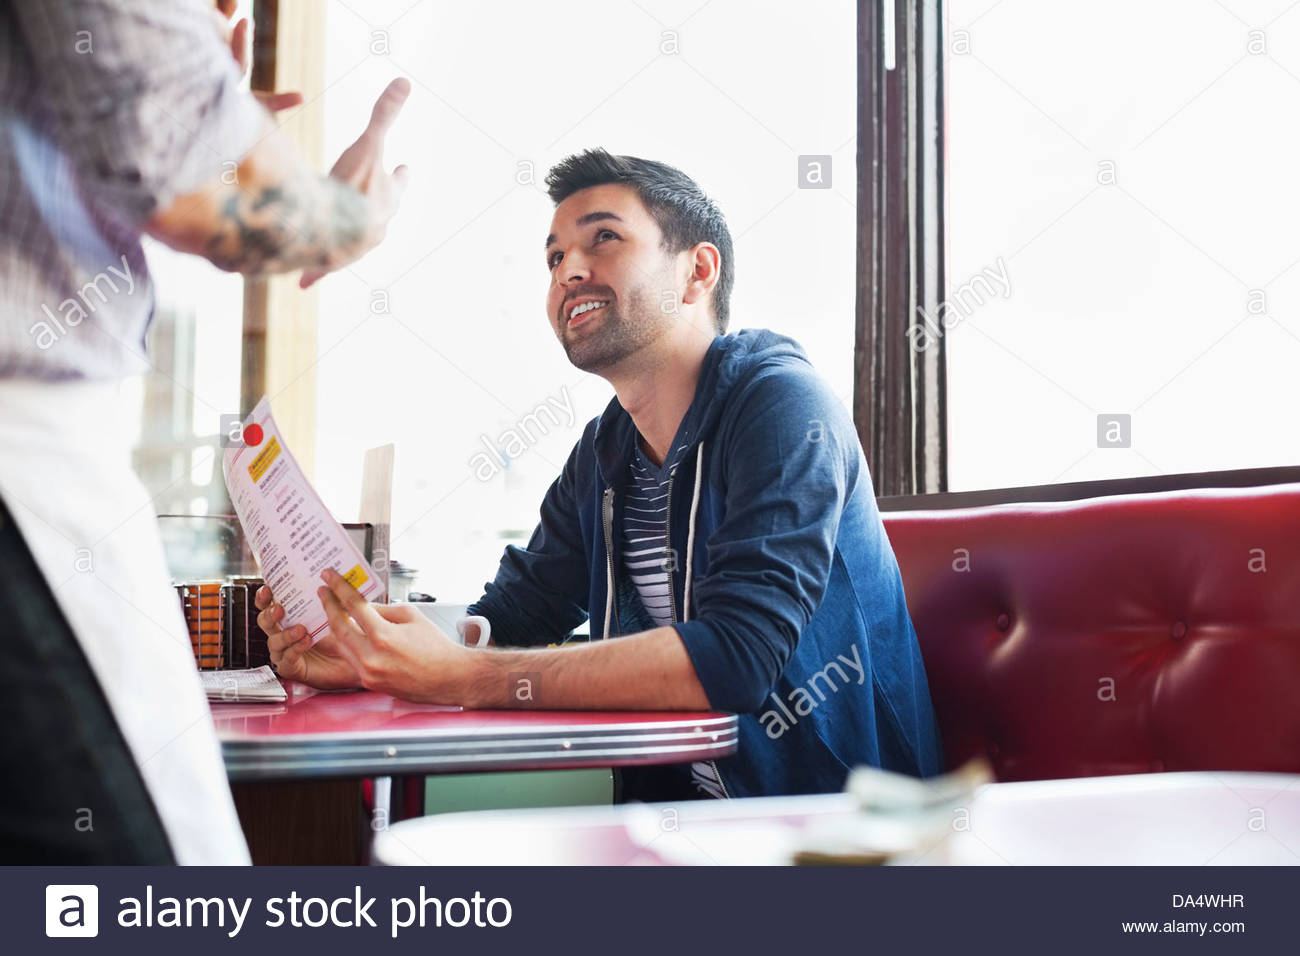 Male customer ordering food in diner Photo Stock